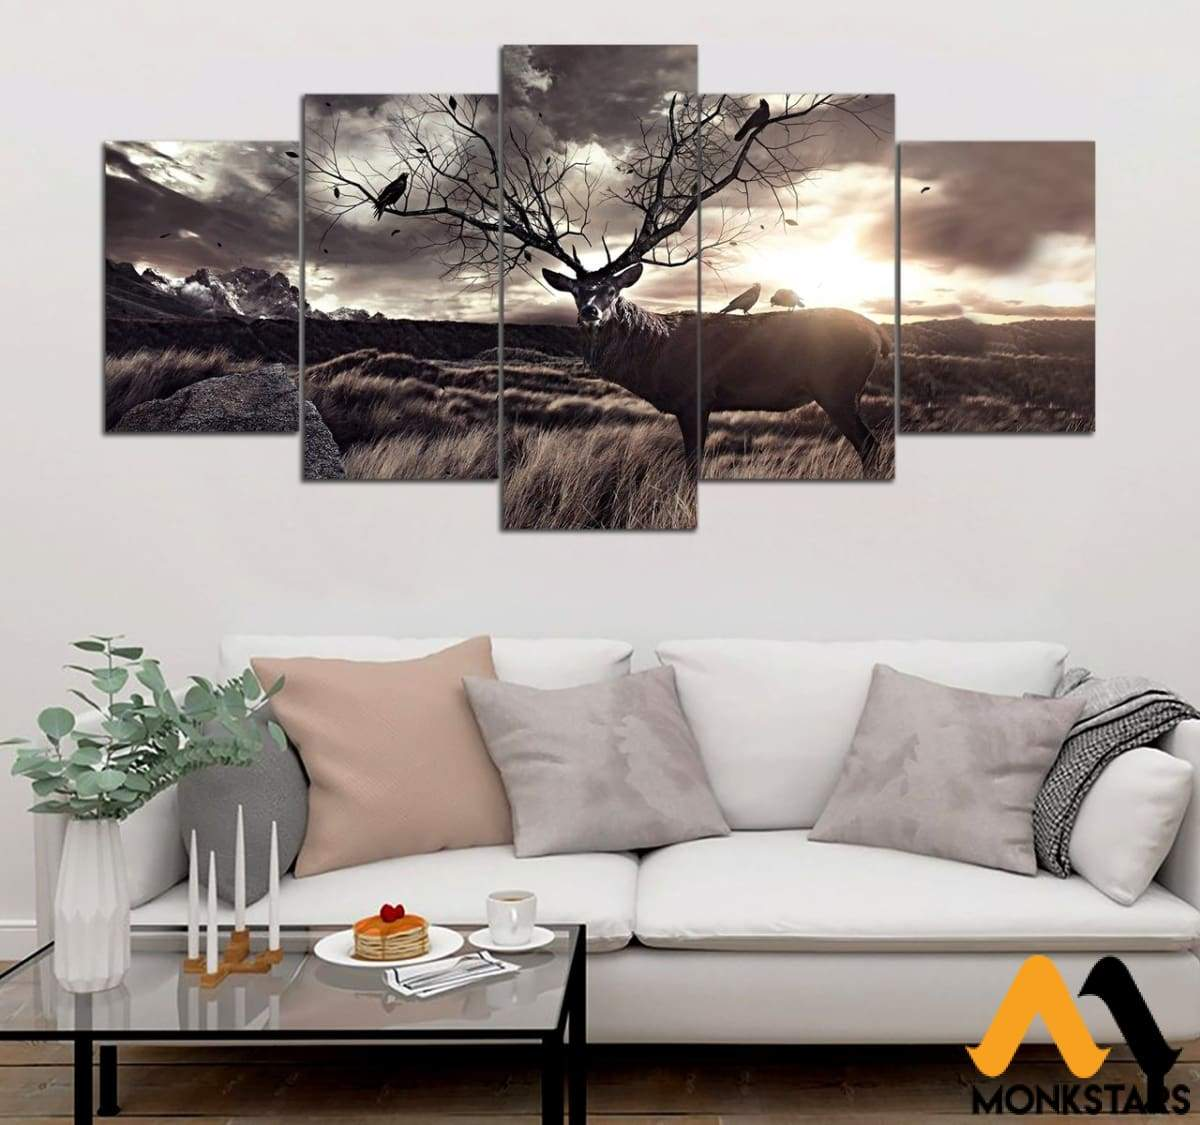 5-Piece Hunter And Sunset Printed Canvas Wall Art Sntk030502 Painting & Calligraphy